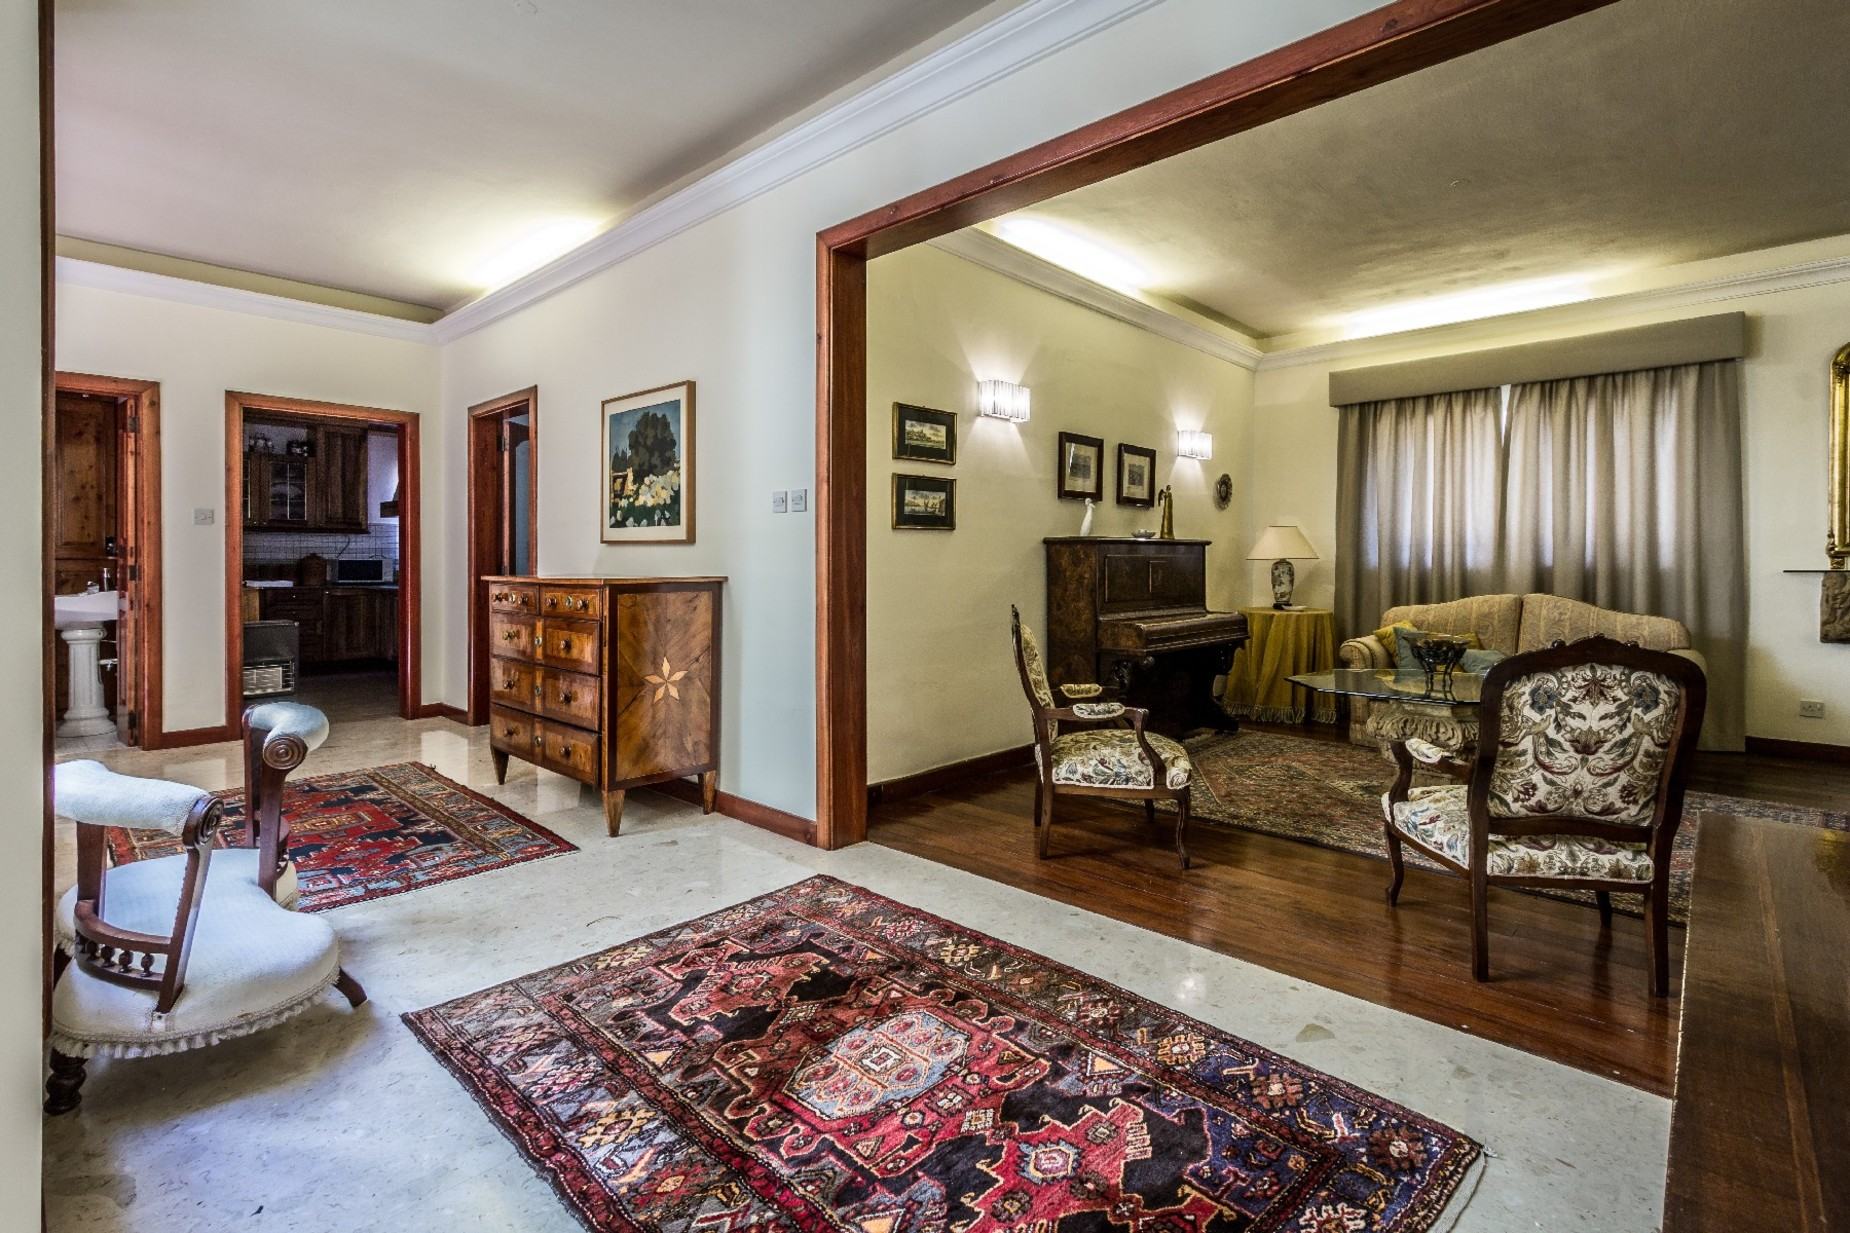 3 bed Apartment For Rent in Madliena, Madliena - thumb 10